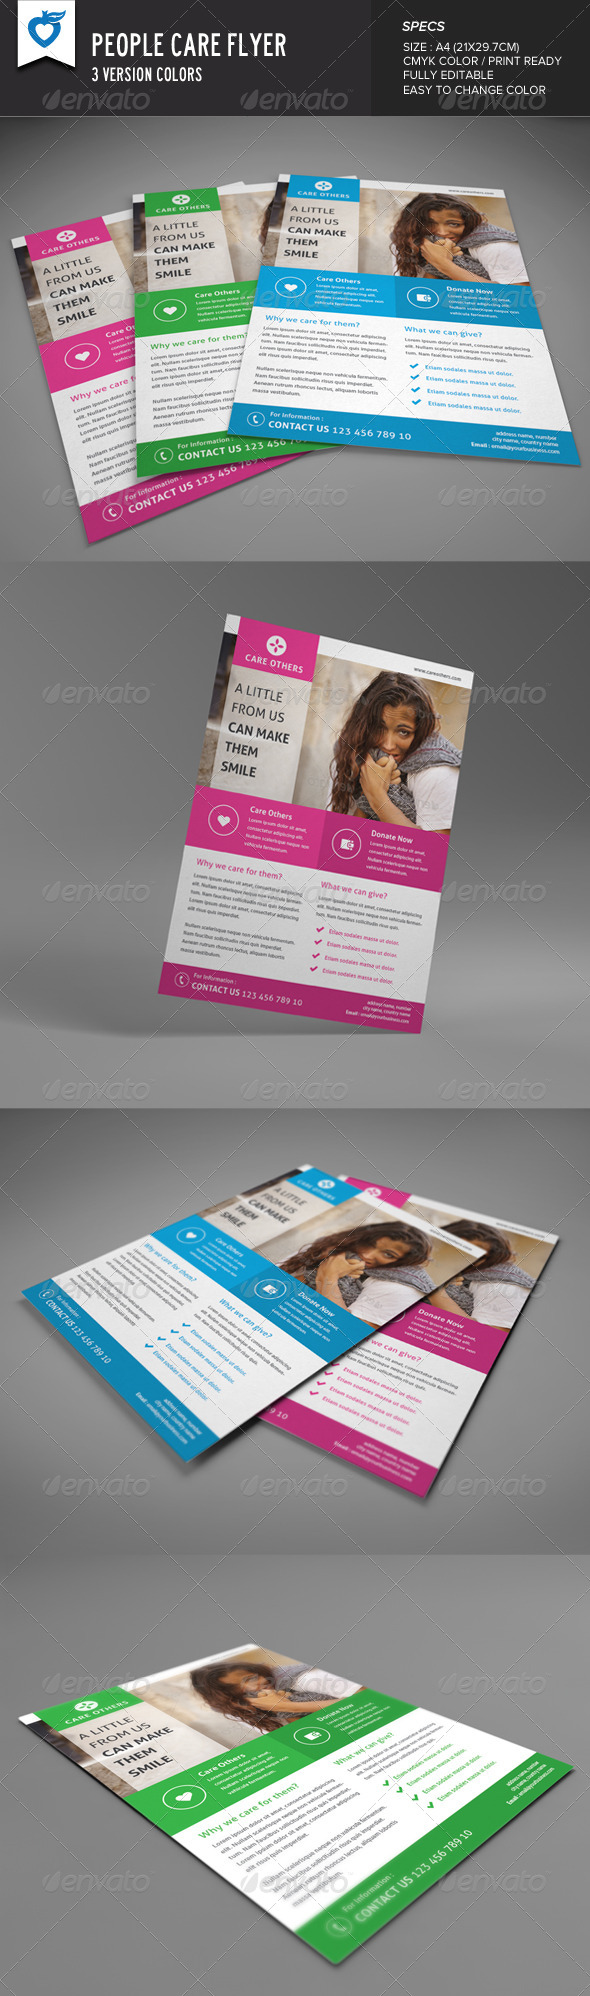 GraphicRiver People Care Flyer 8323156